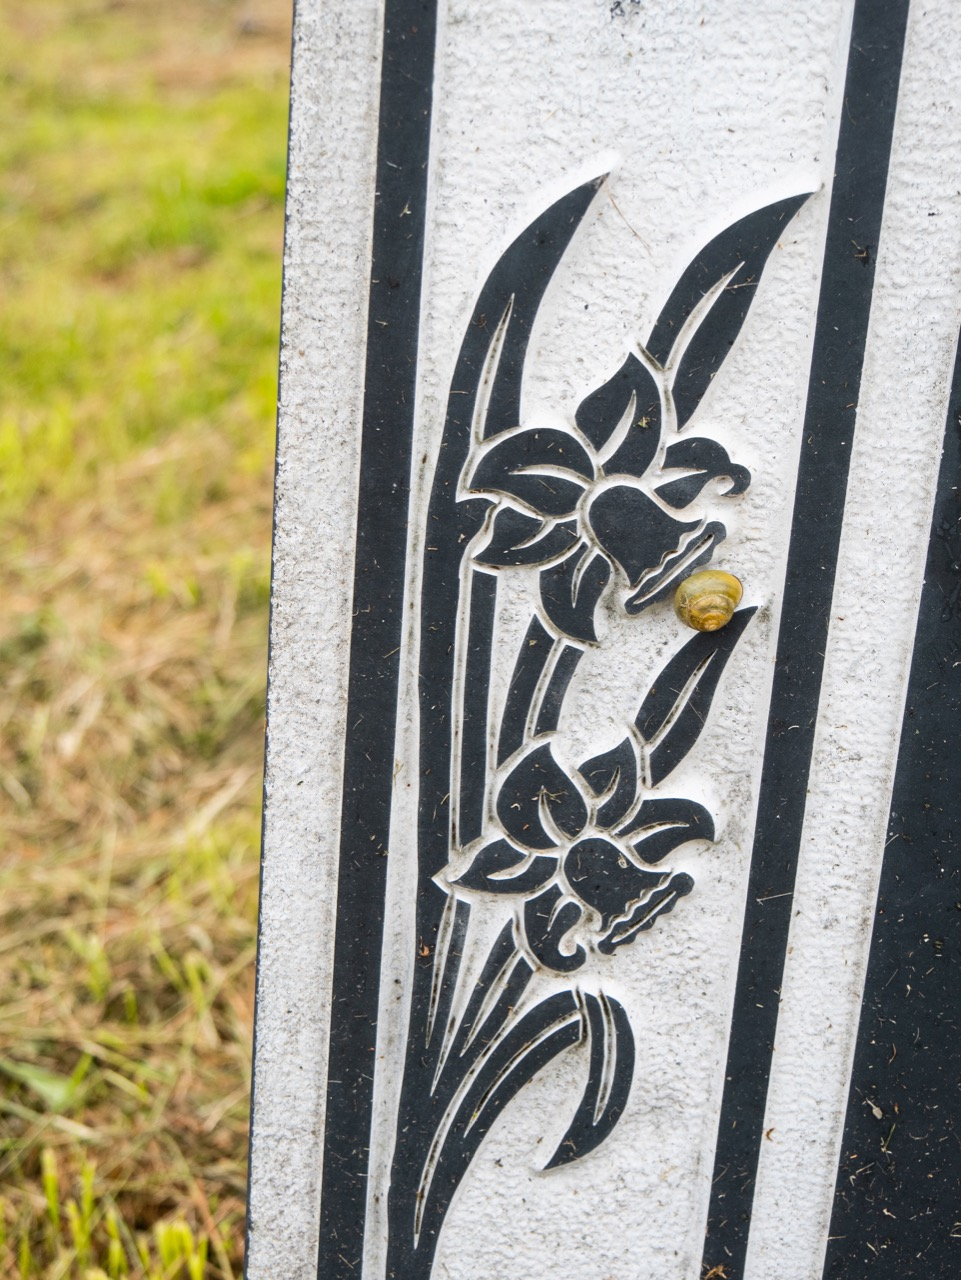 Daffodils (and a snail) on a tombstone